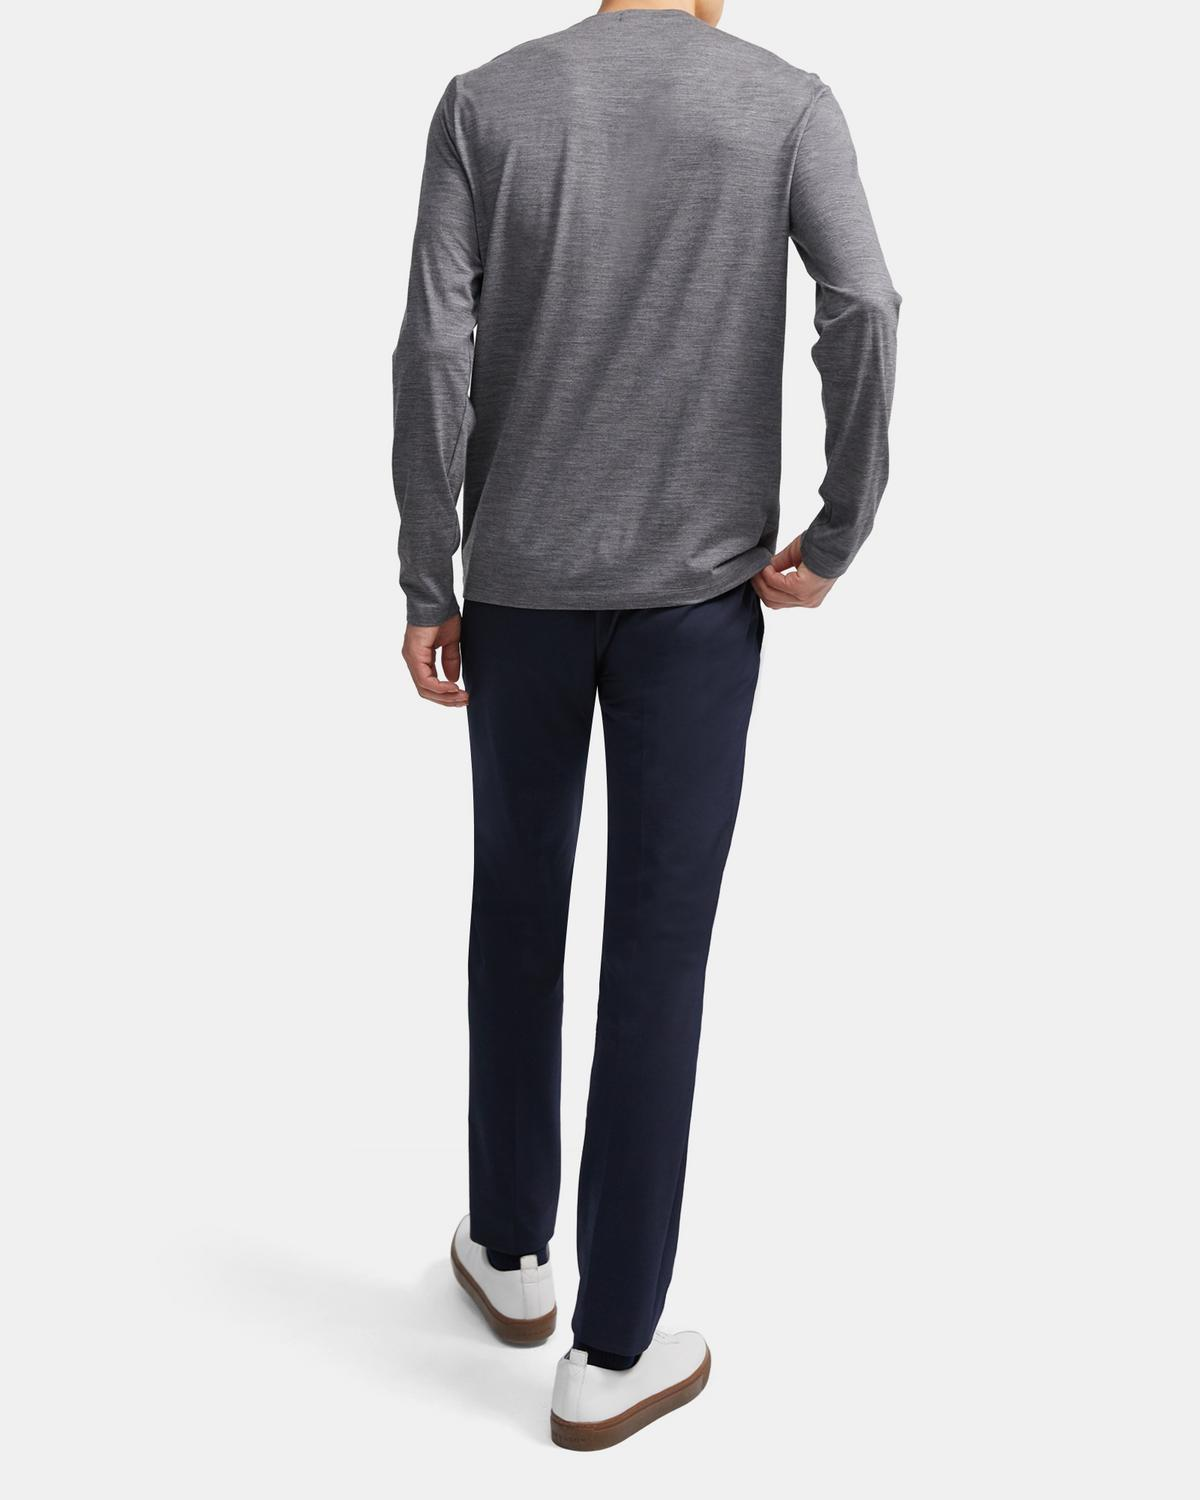 Long-Sleeve Tee in Active Wool